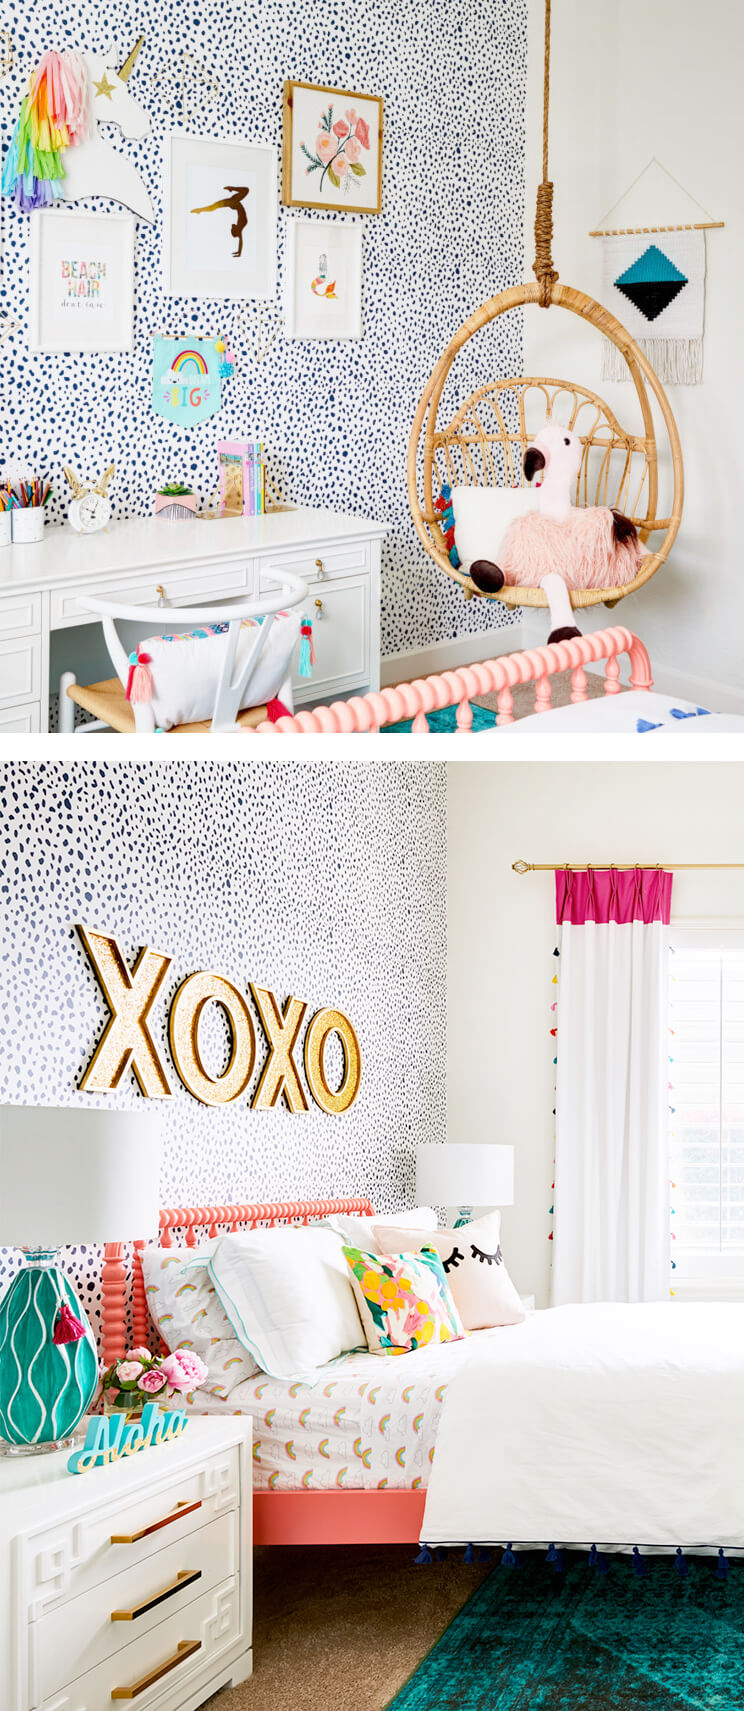 Eclectic girls bedroom with animal print removable wallpaper, rattan hanging chair and rainbow interior decor